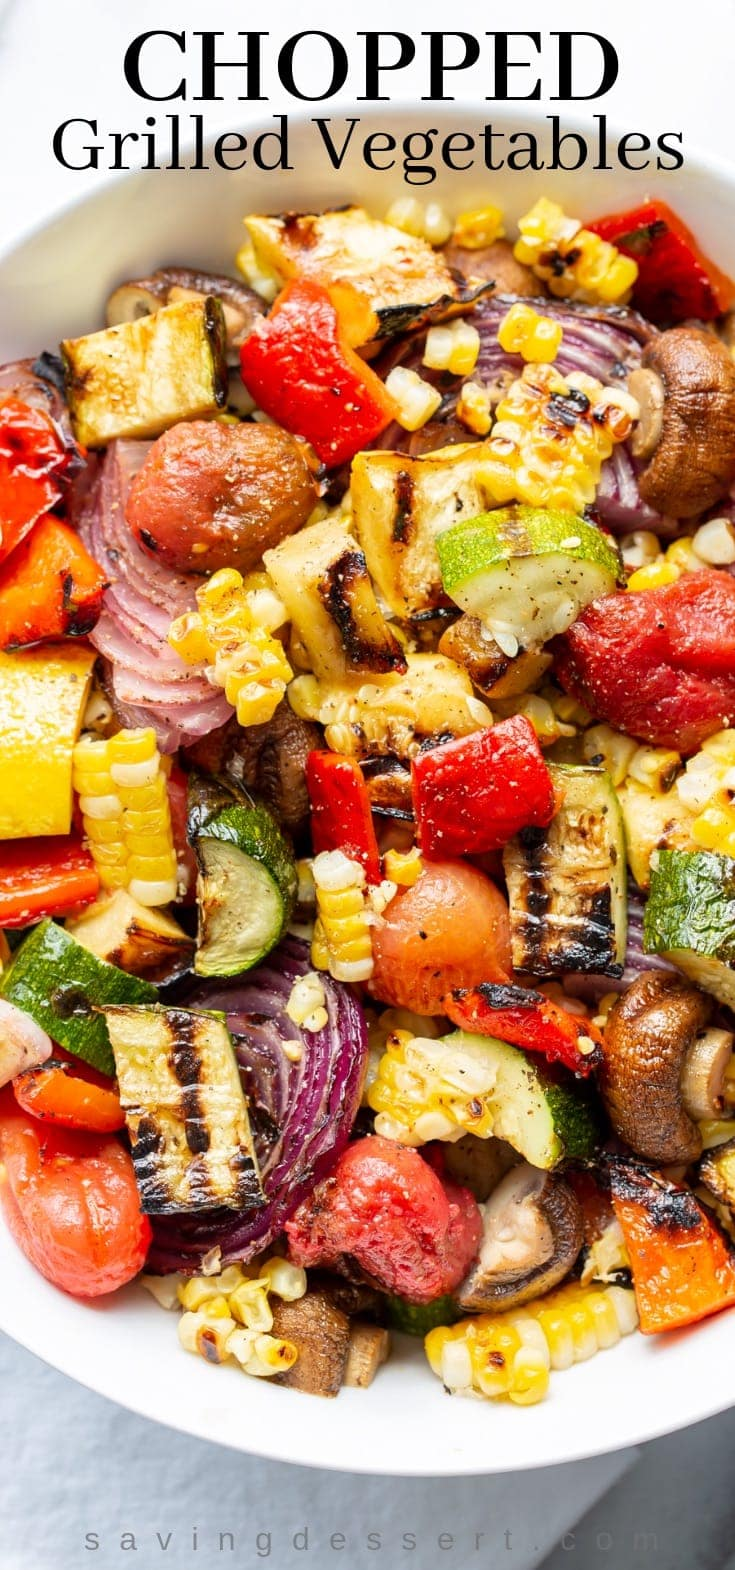 Grilled vegetables in a bowl - corn, squash, eggplant, onion, peppers and tomatoes